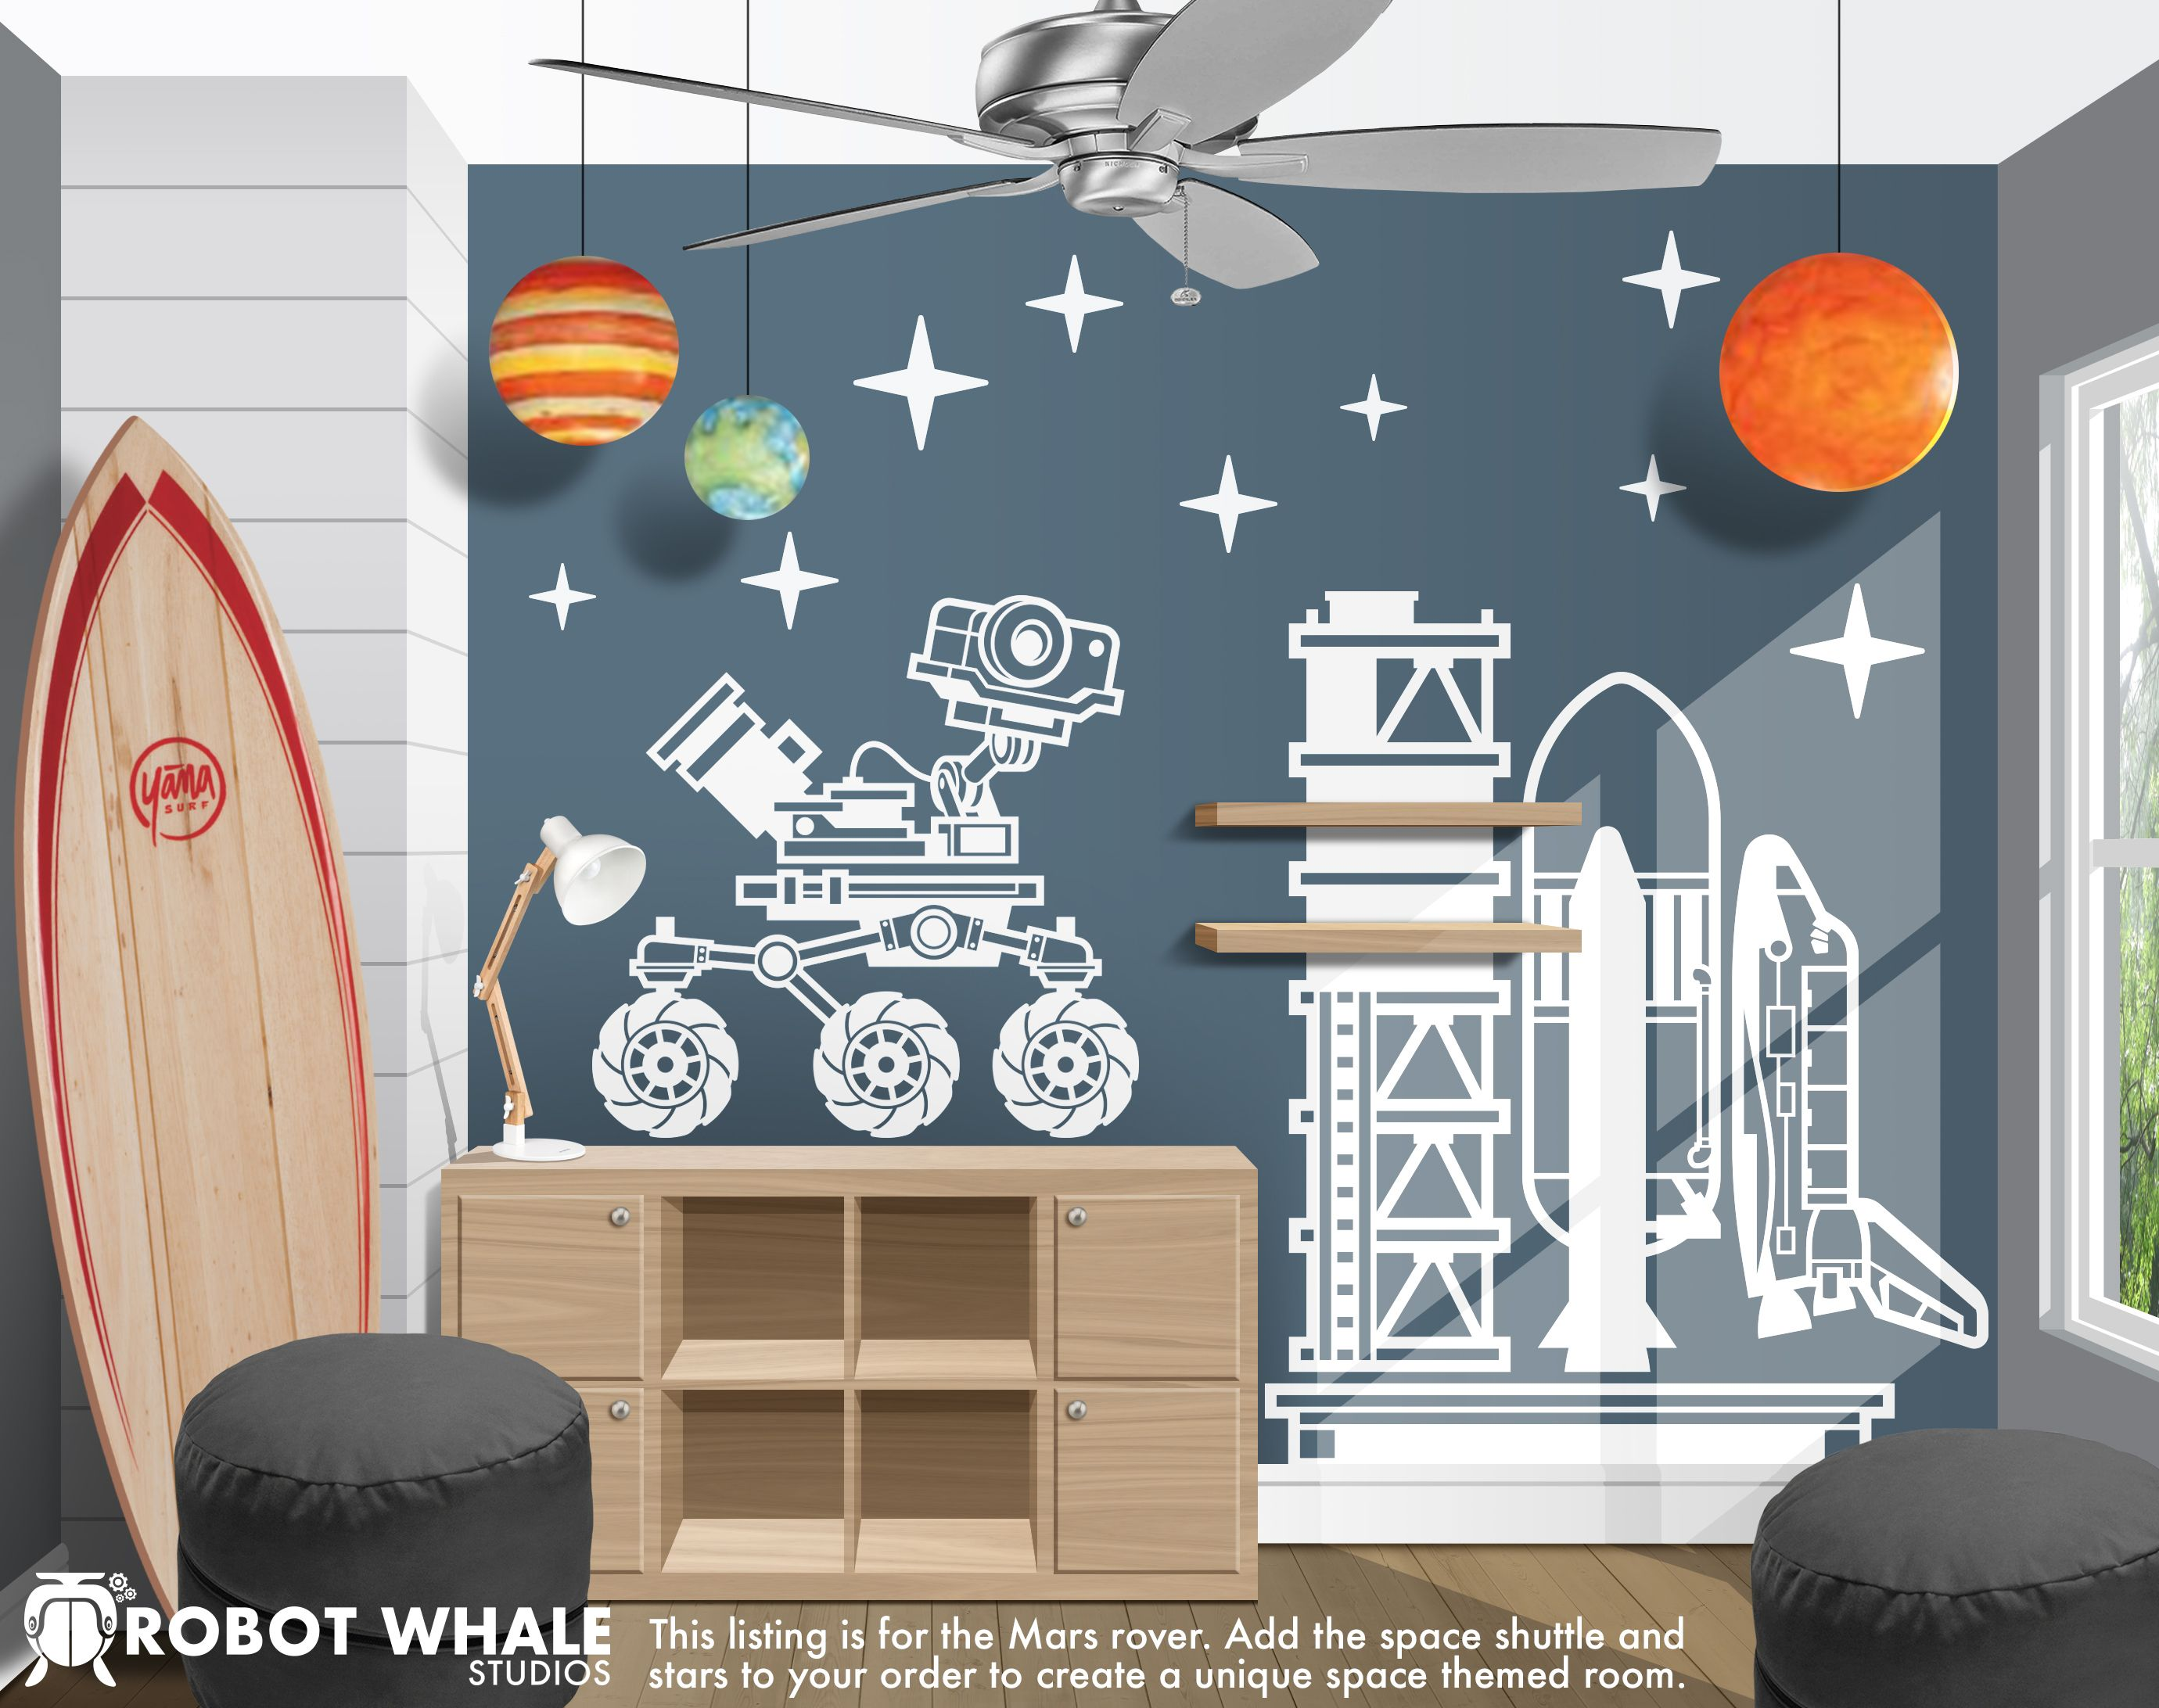 a mars rover out exploring vinyl decal for an outer space kids rh pinterest com Sky Themed Room Outer Space Decorations to Make